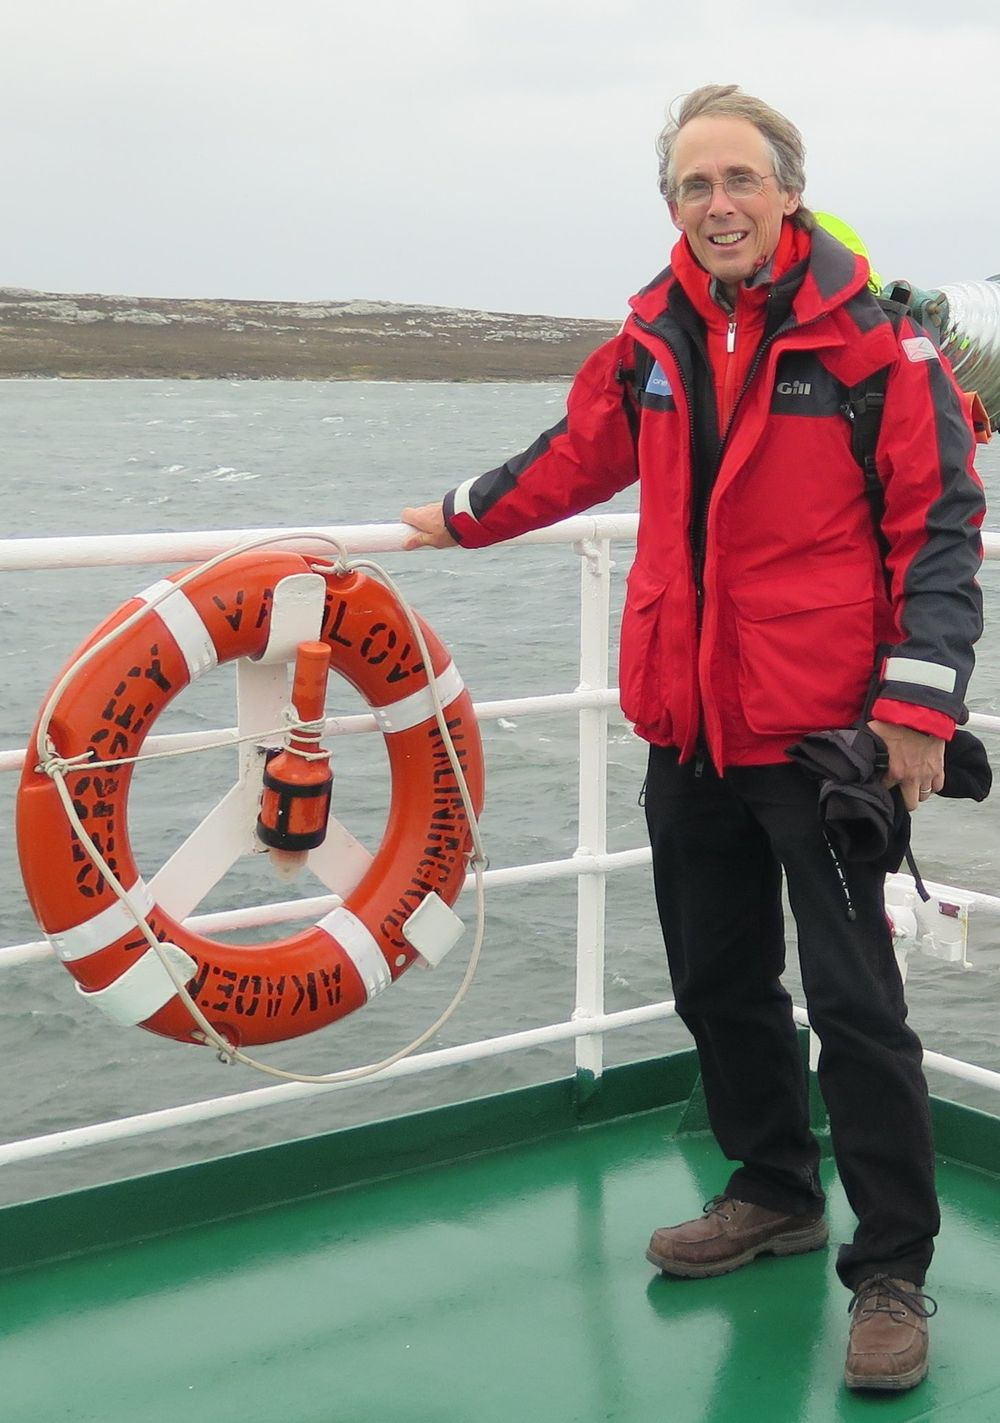 The next morning I went out on deck aboard the  Akademik Sergey Vavilov  and checked out the weather for Day Two in the Falklands: cold, windy and rainy, with a chance of snow.